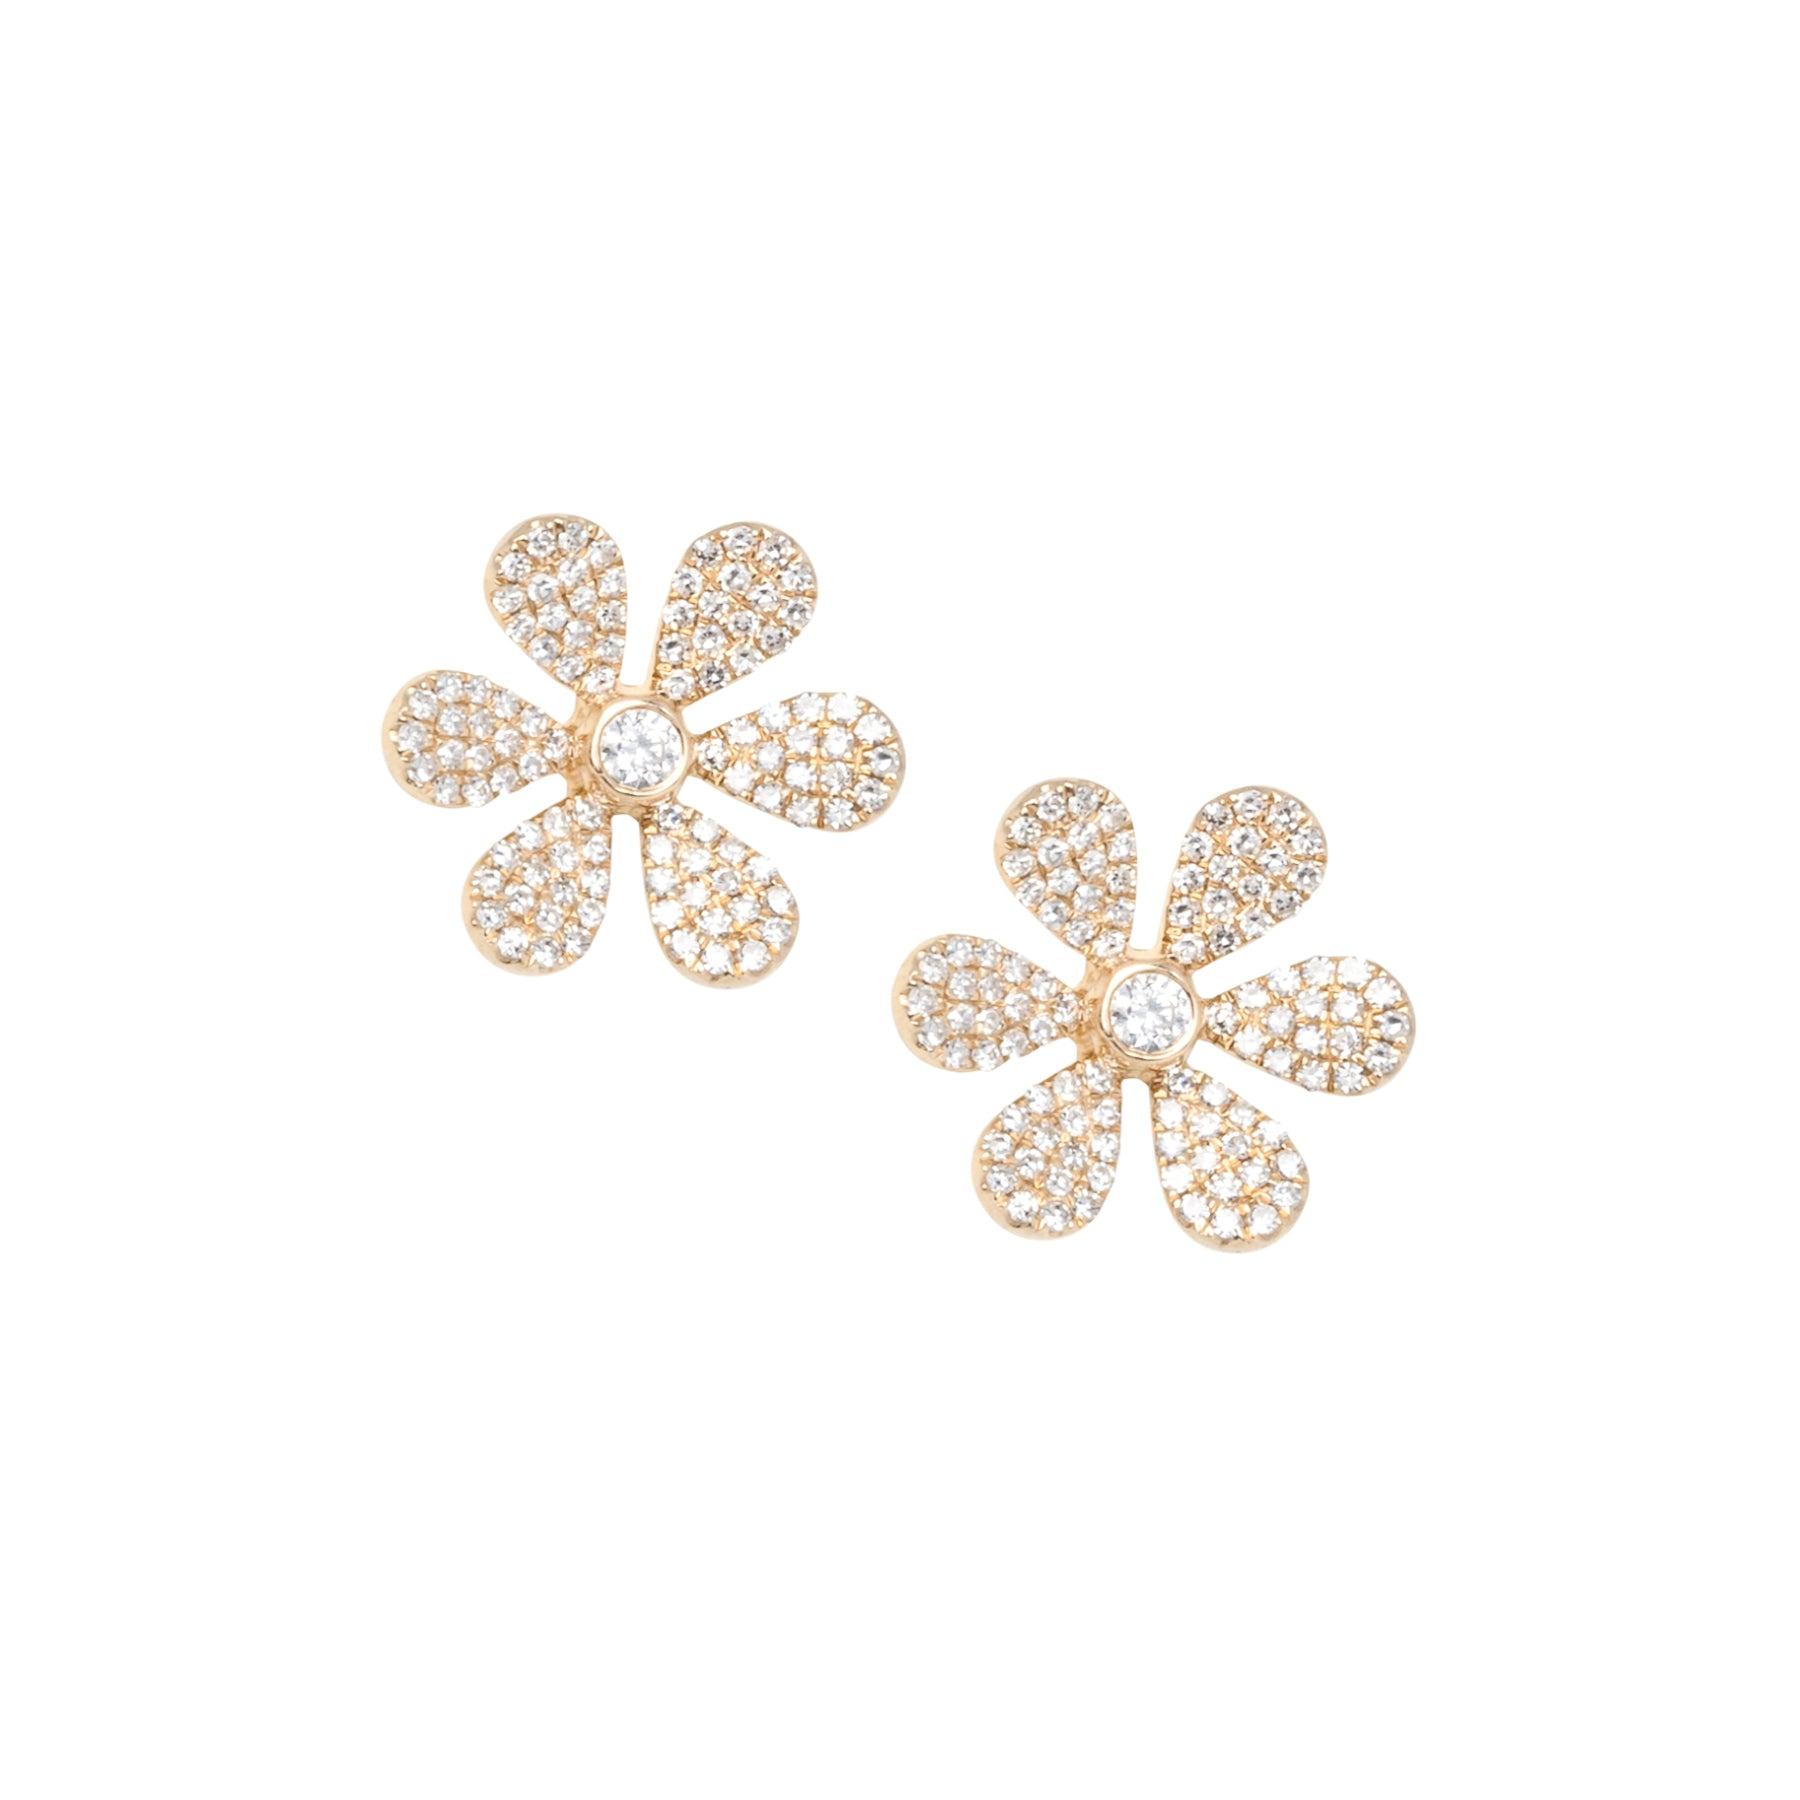 Large Daisy Pave Studs